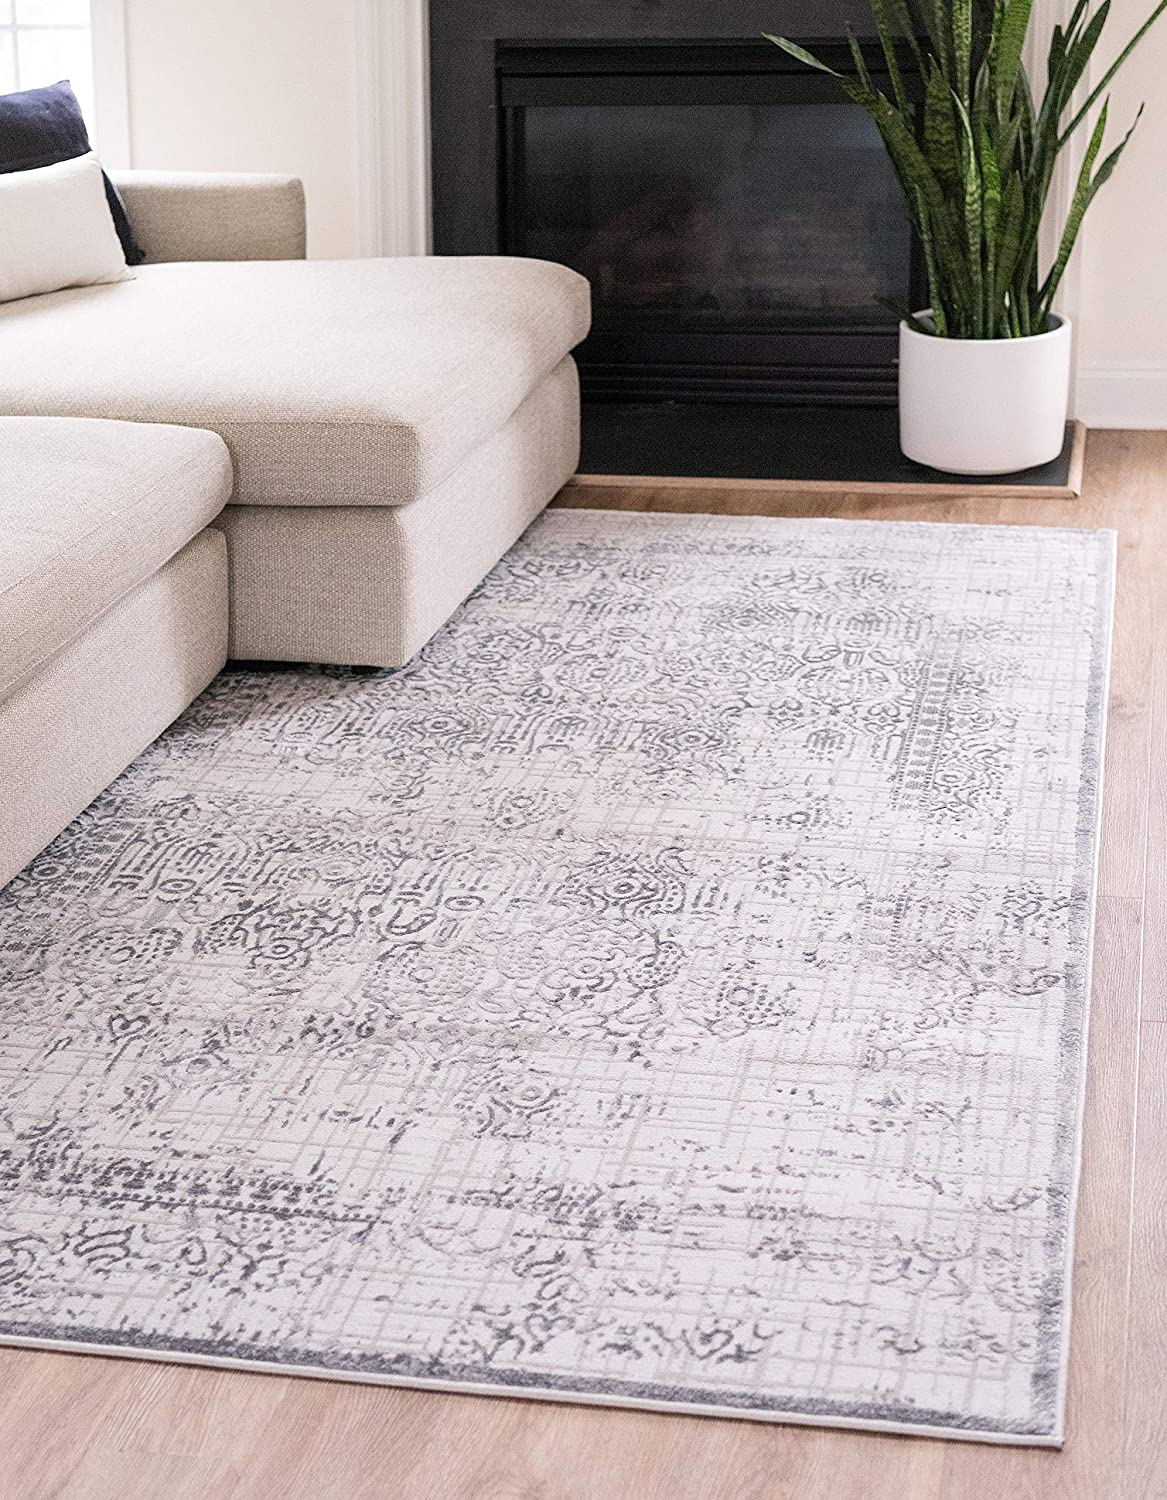 Unique Loom Aberdeen Collection Traditional Textured Vintage Gray Area Rug (9' 0 x 12' 0)